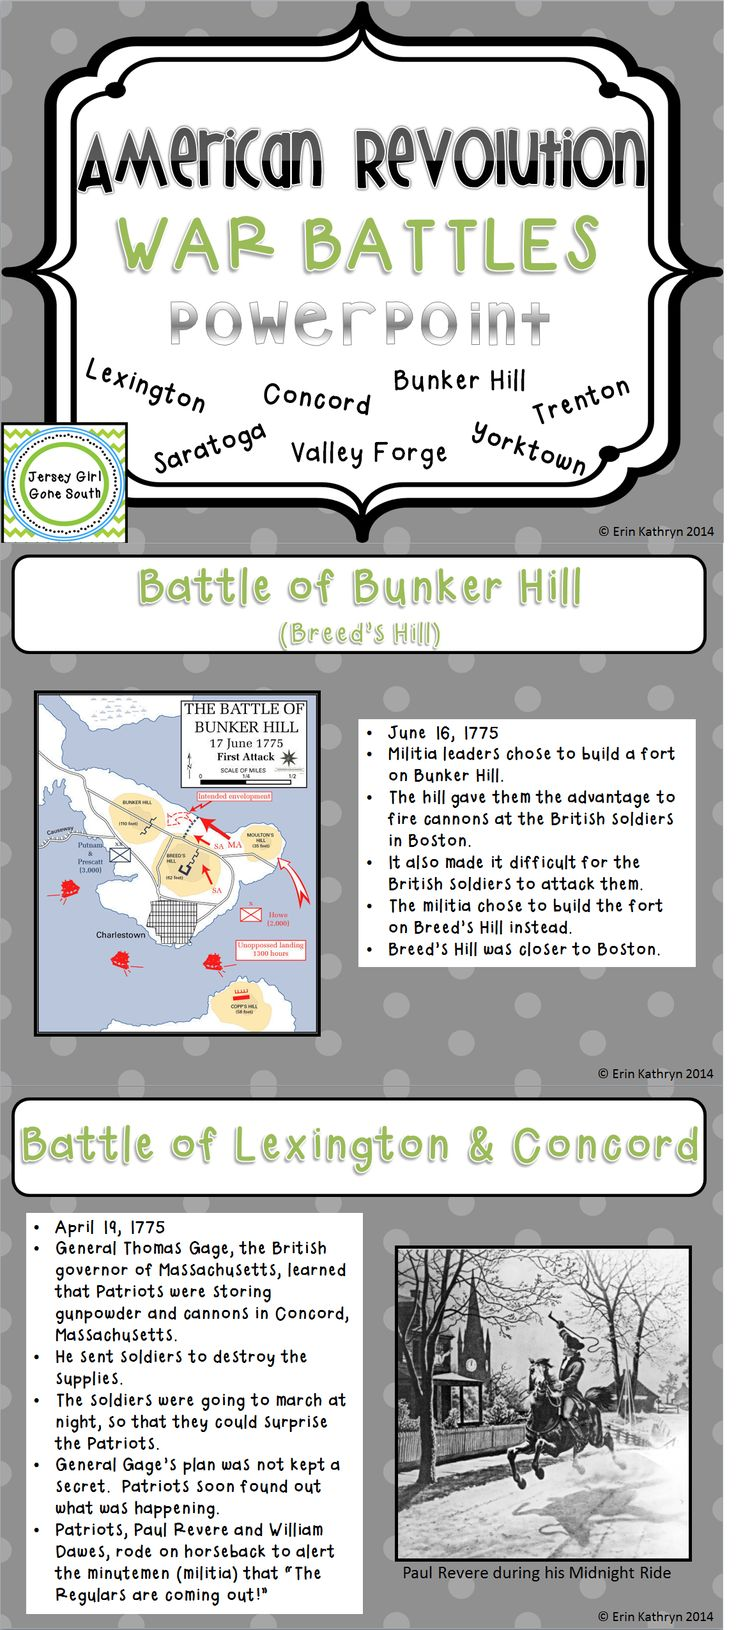 an introduction to the origins of the american revolution and the battle of bunker hill Revolution & battle of bunker hill: 1775  at   edu/history/web03/atlases/american%20revolution/american%20revolution%.